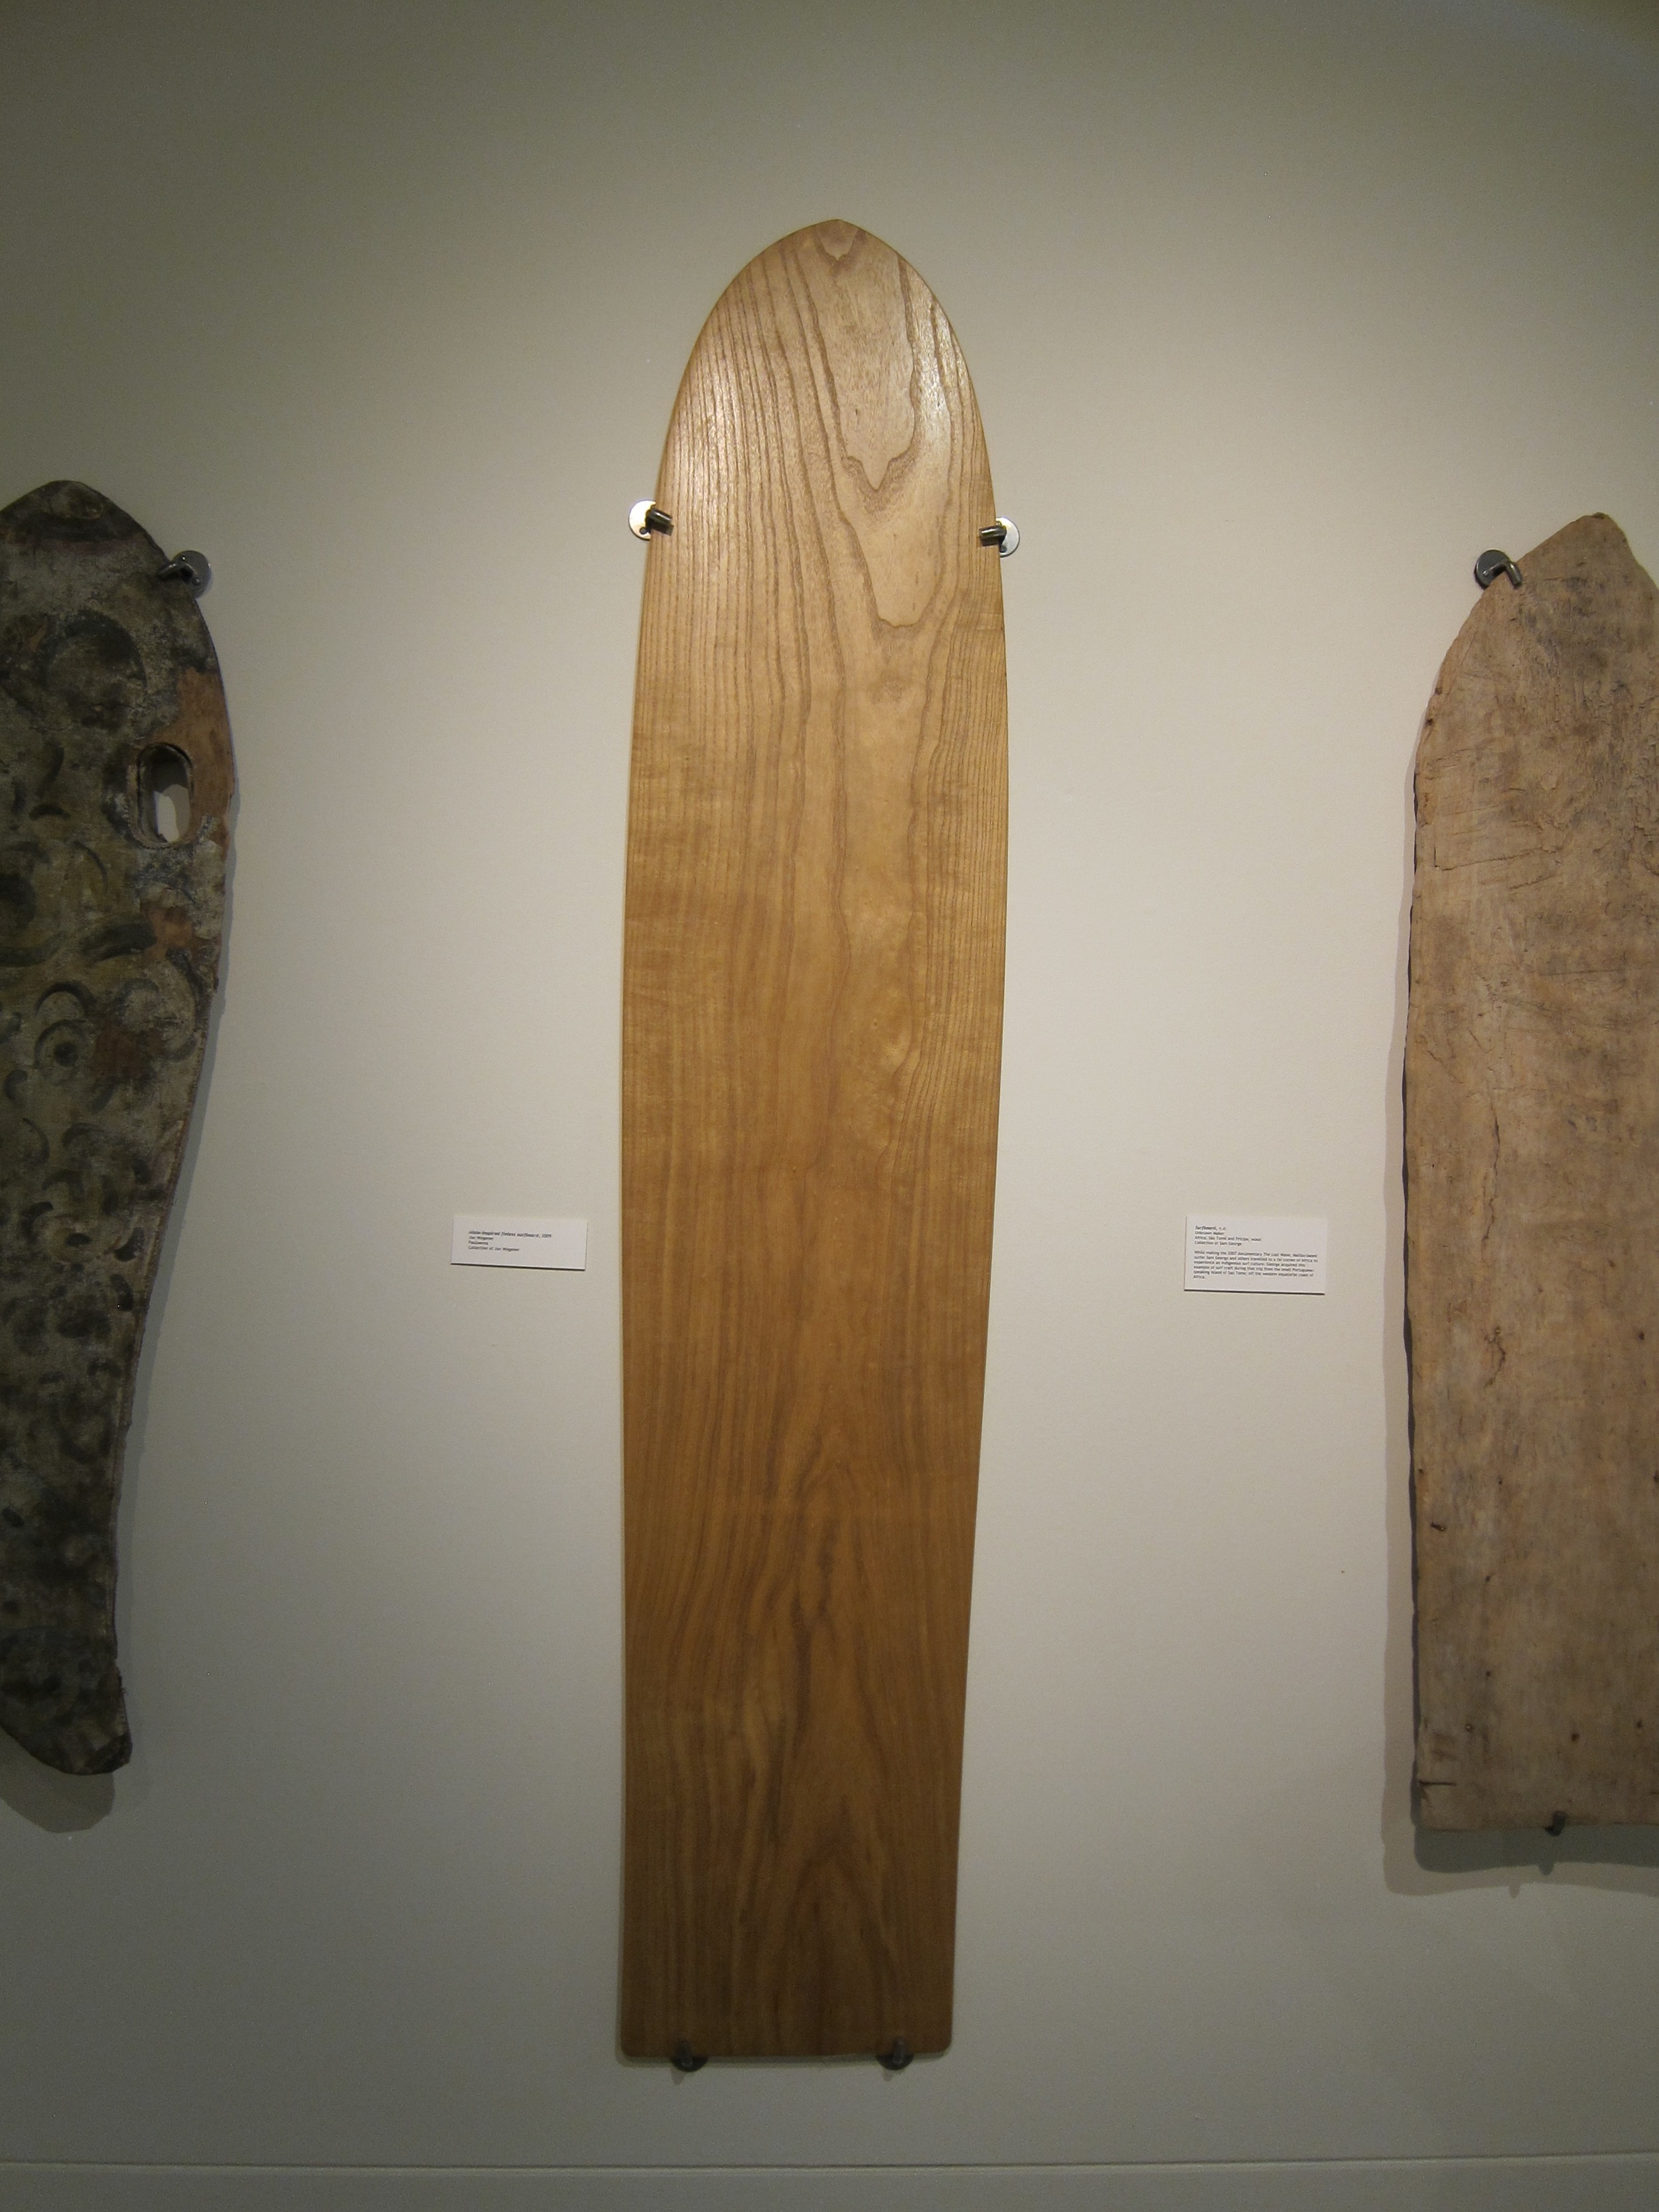 Alaia-inspired finless surfboard, 2009. Shaped by Jon Wegener. Paulownia. Part of Surf Craft Exhibit.